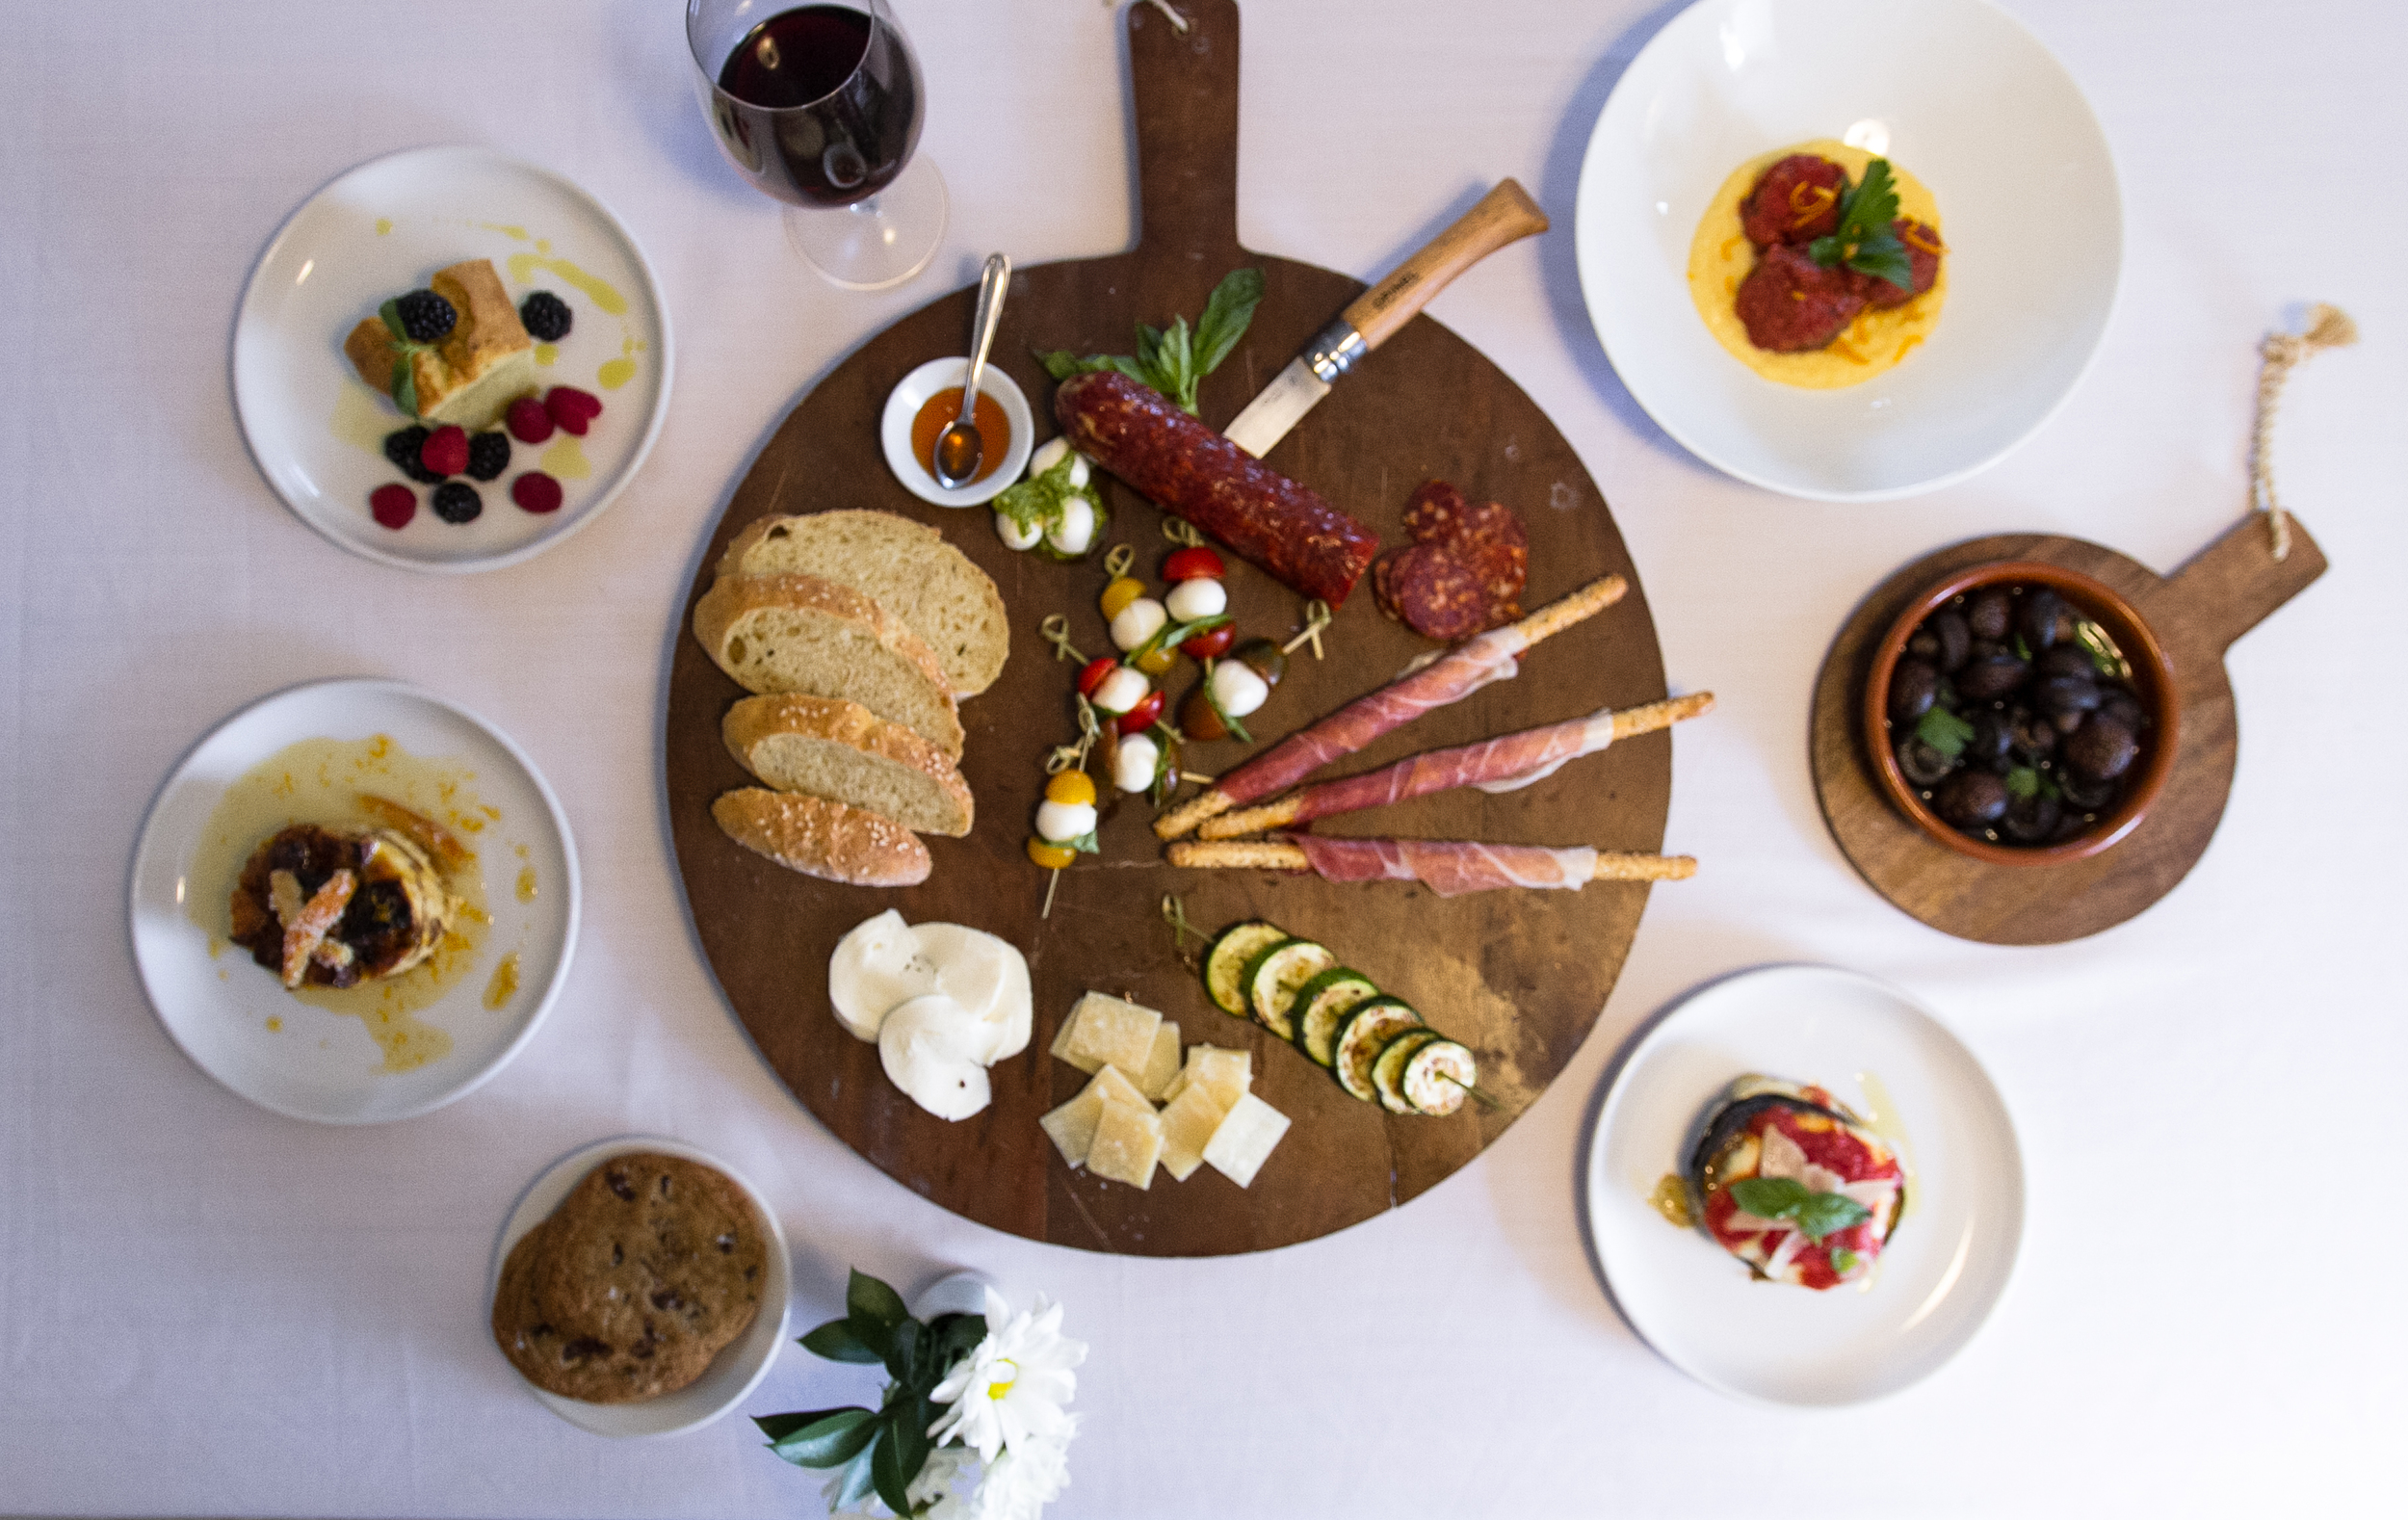 Antipasto ~ Assorted cured meats, cheeses, fire roasted vegetables